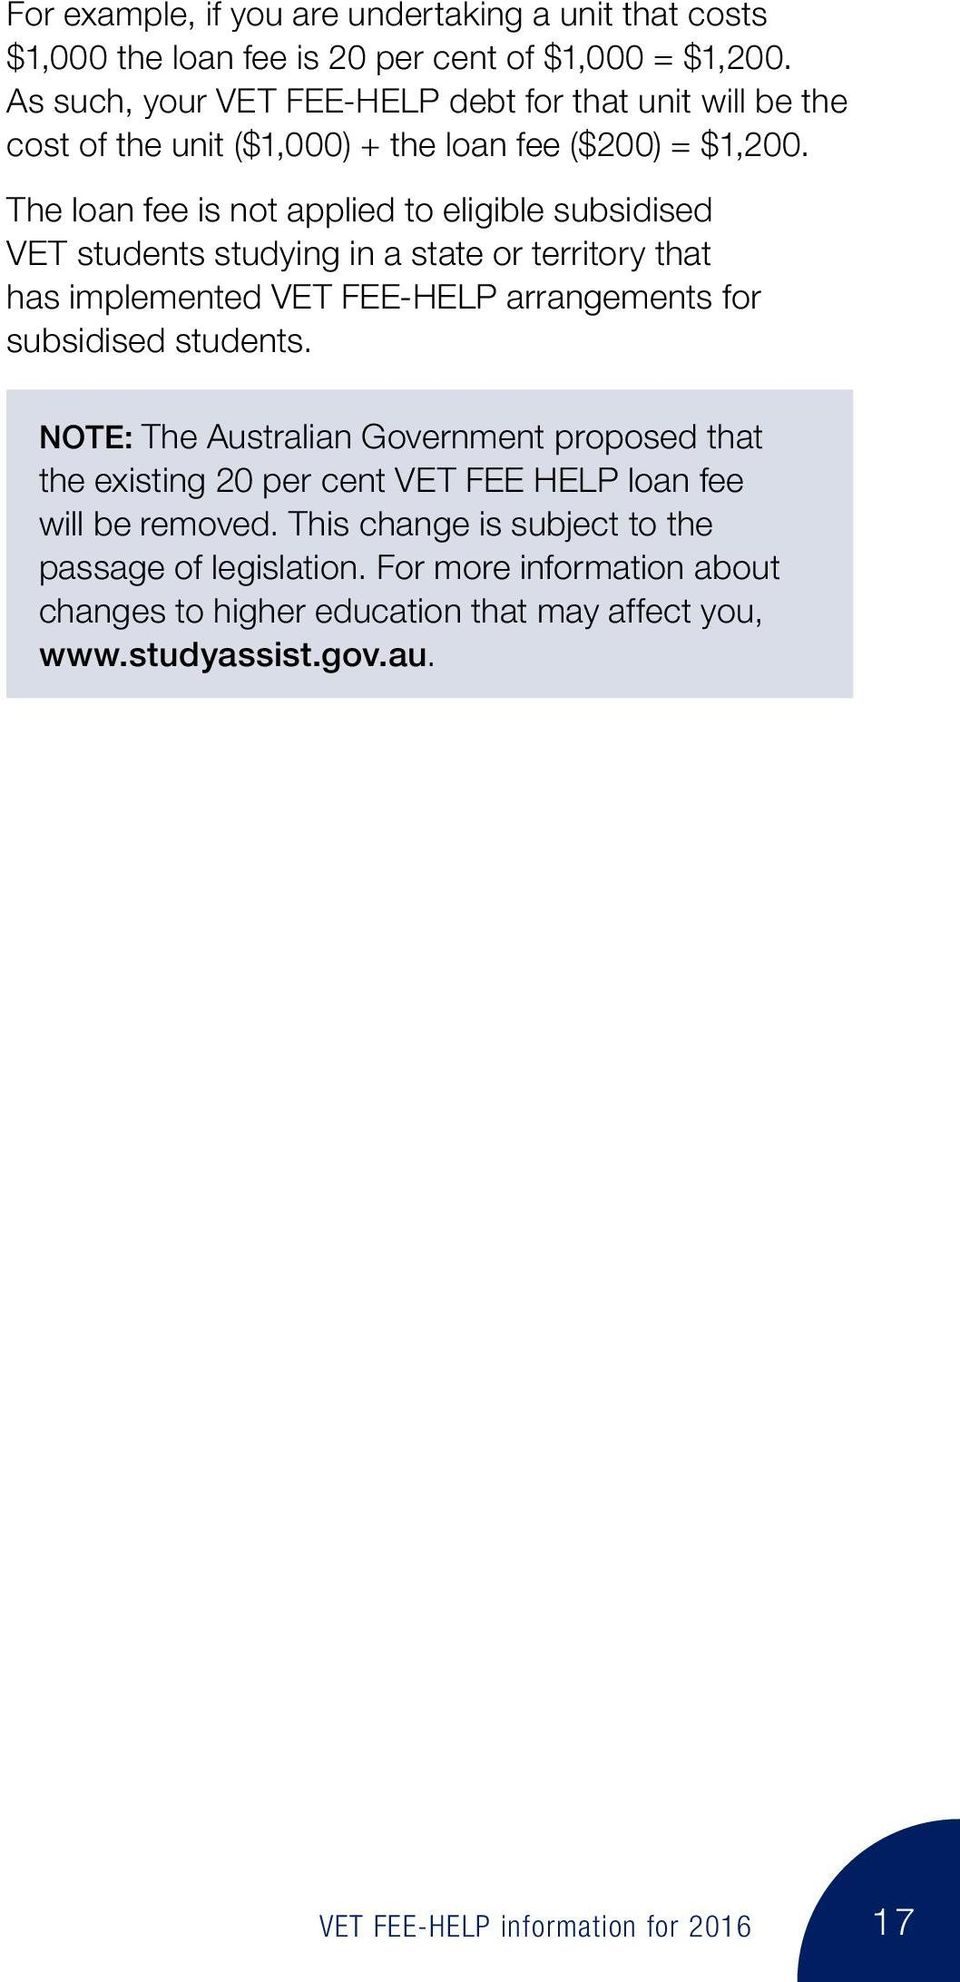 The loan fee is not applied to eligible subsidised VET students studying in a state or territory that has implemented VET FEE-HELP arrangements for subsidised students.